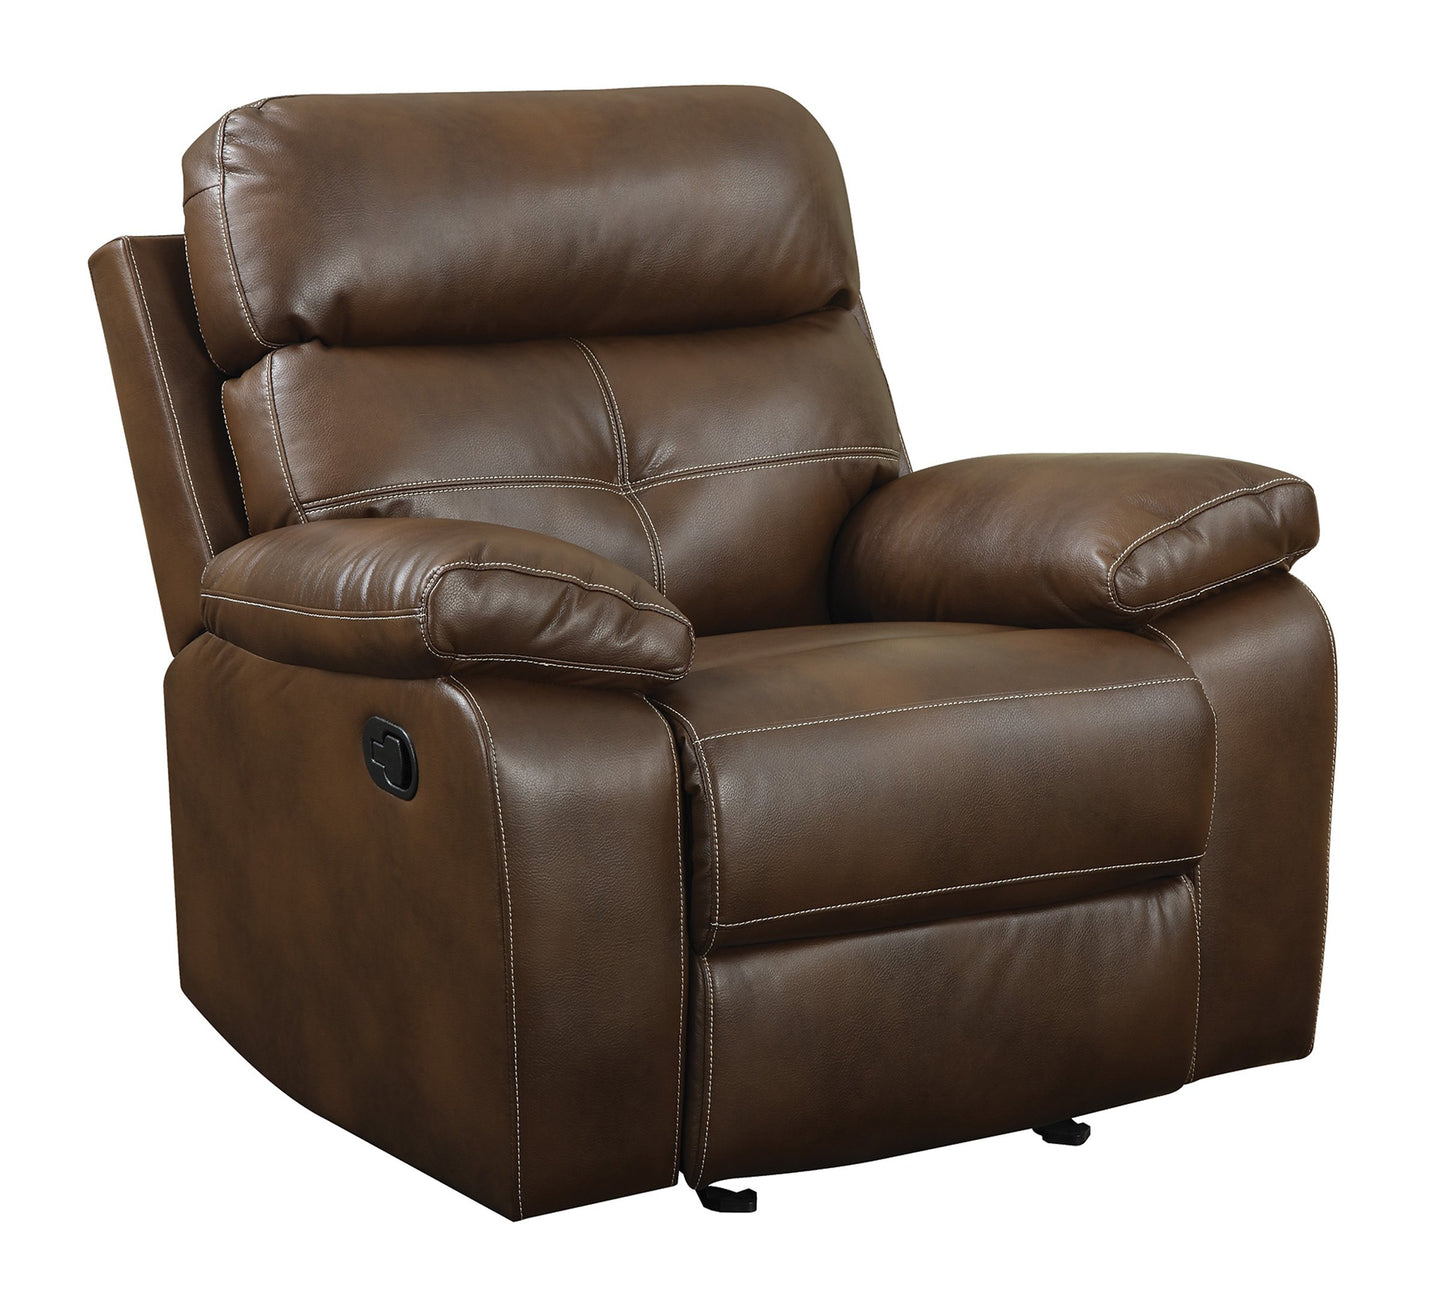 Homy Living Damiano Brown Breathable Leatherette Finish Recliner Chair